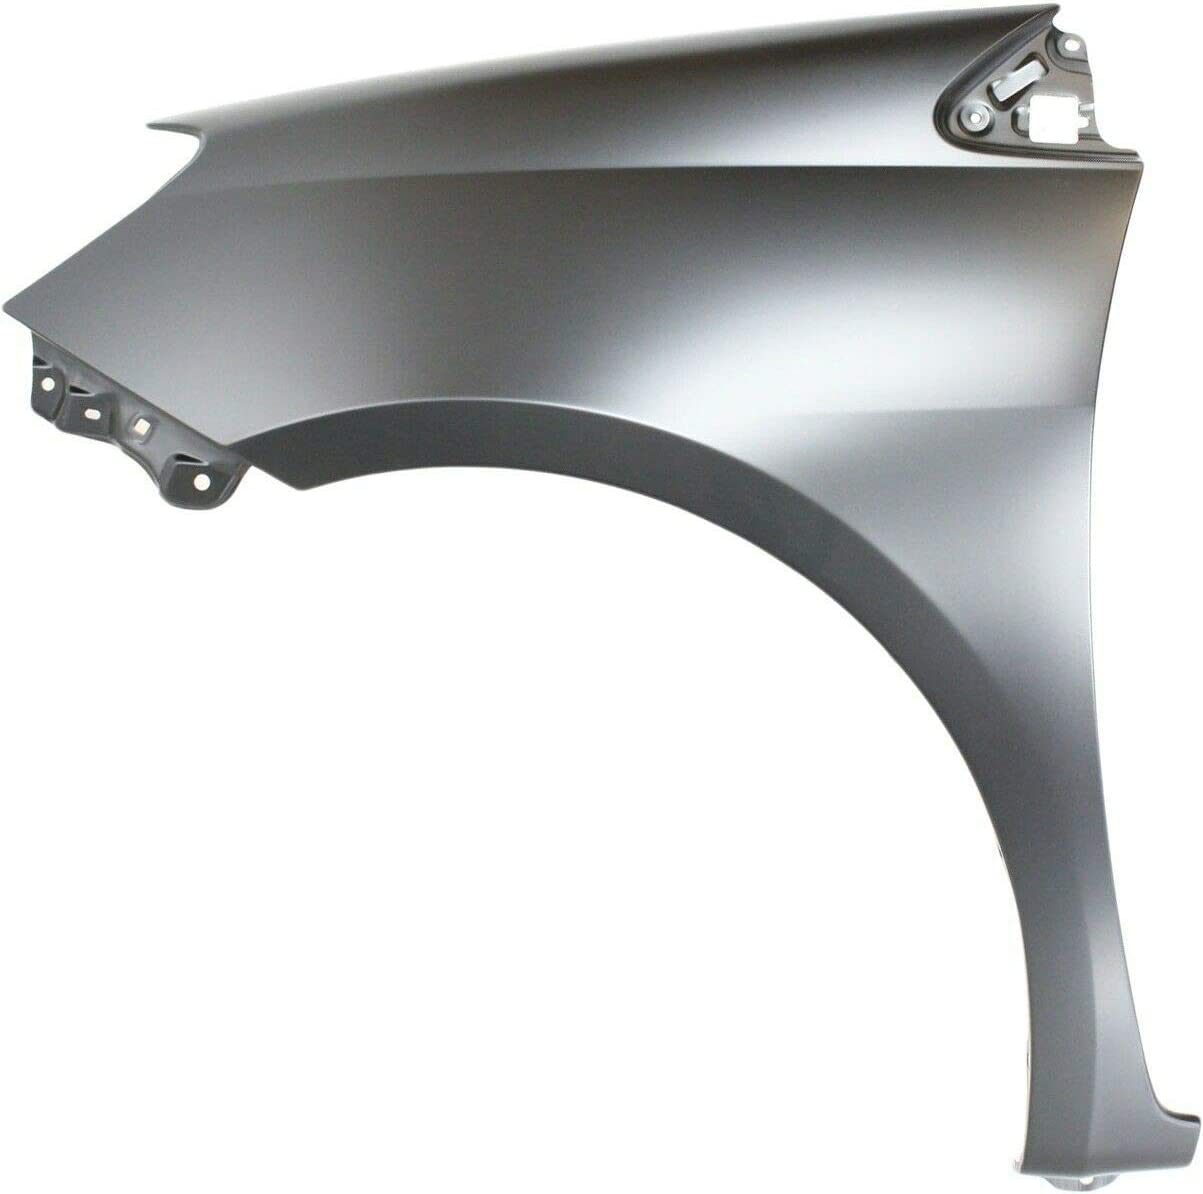 overseas Yhang Fender for 2004-2010 LE CE 2006-20 shop Sienna